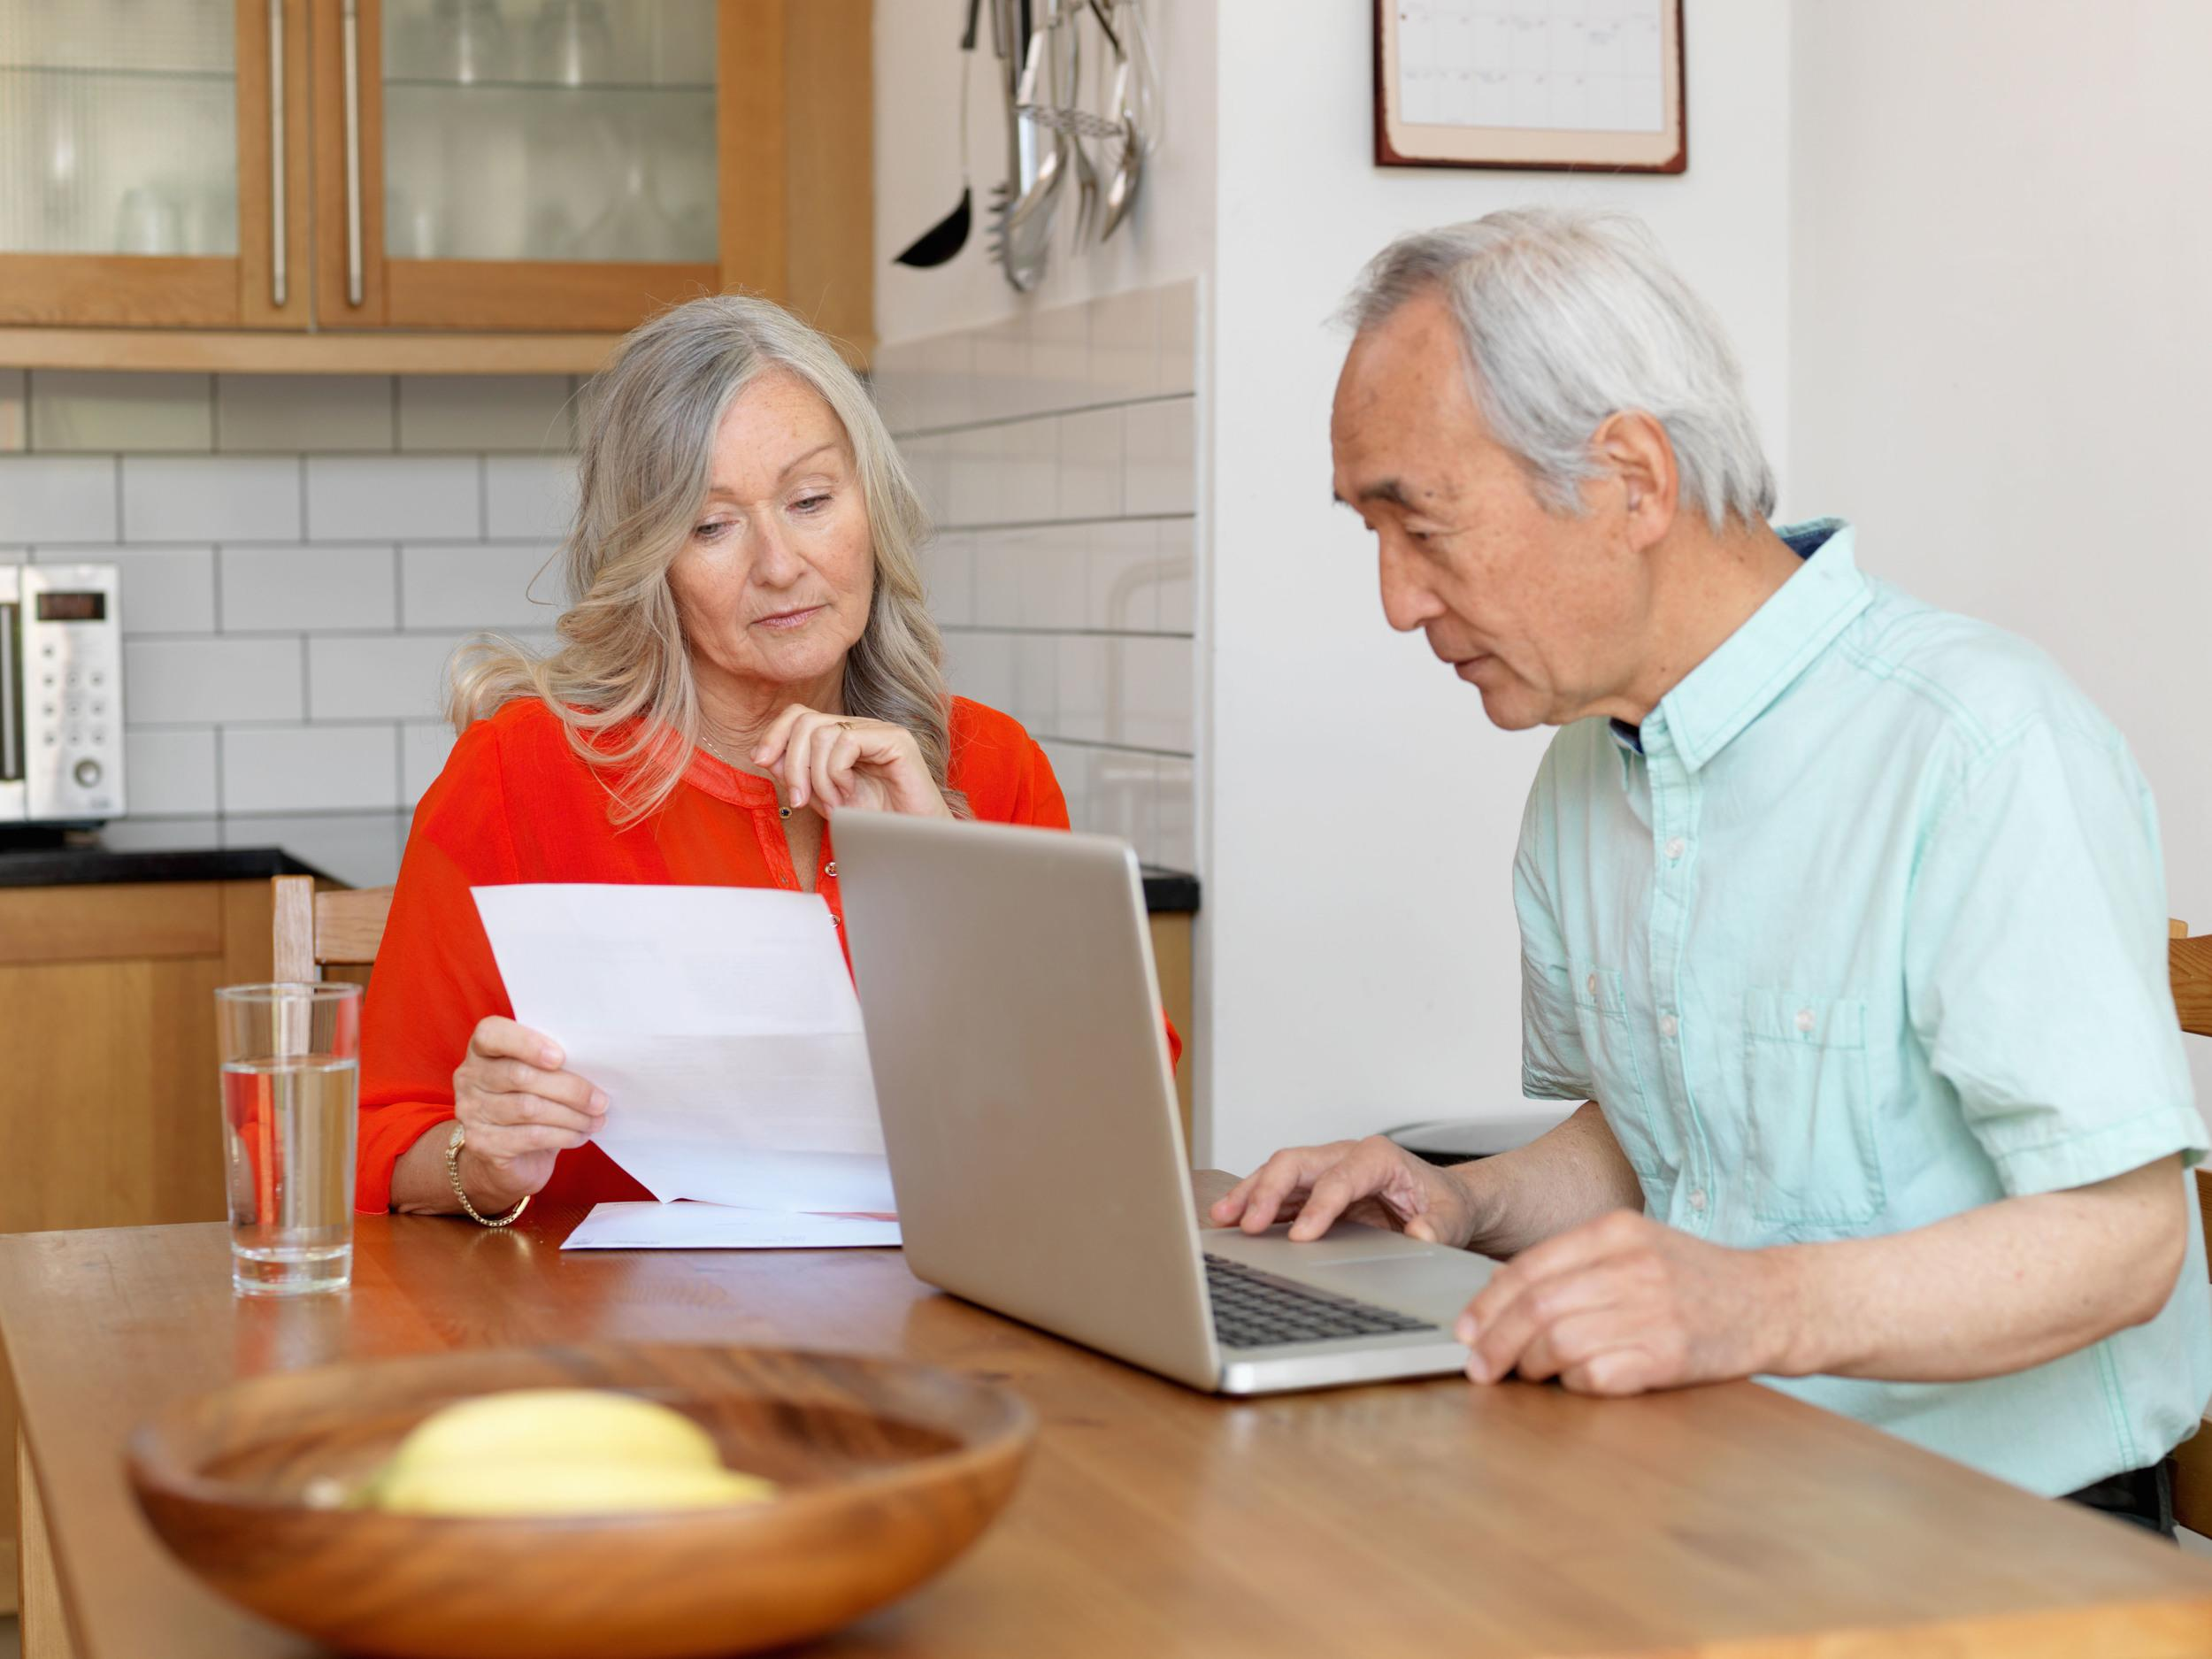 The day to day basics are swallowing up their fair share of pensioner cash too. On average, people aged 65-74 spend a third of their weekly income on essentials like food and bills - which is hardly living the high life.